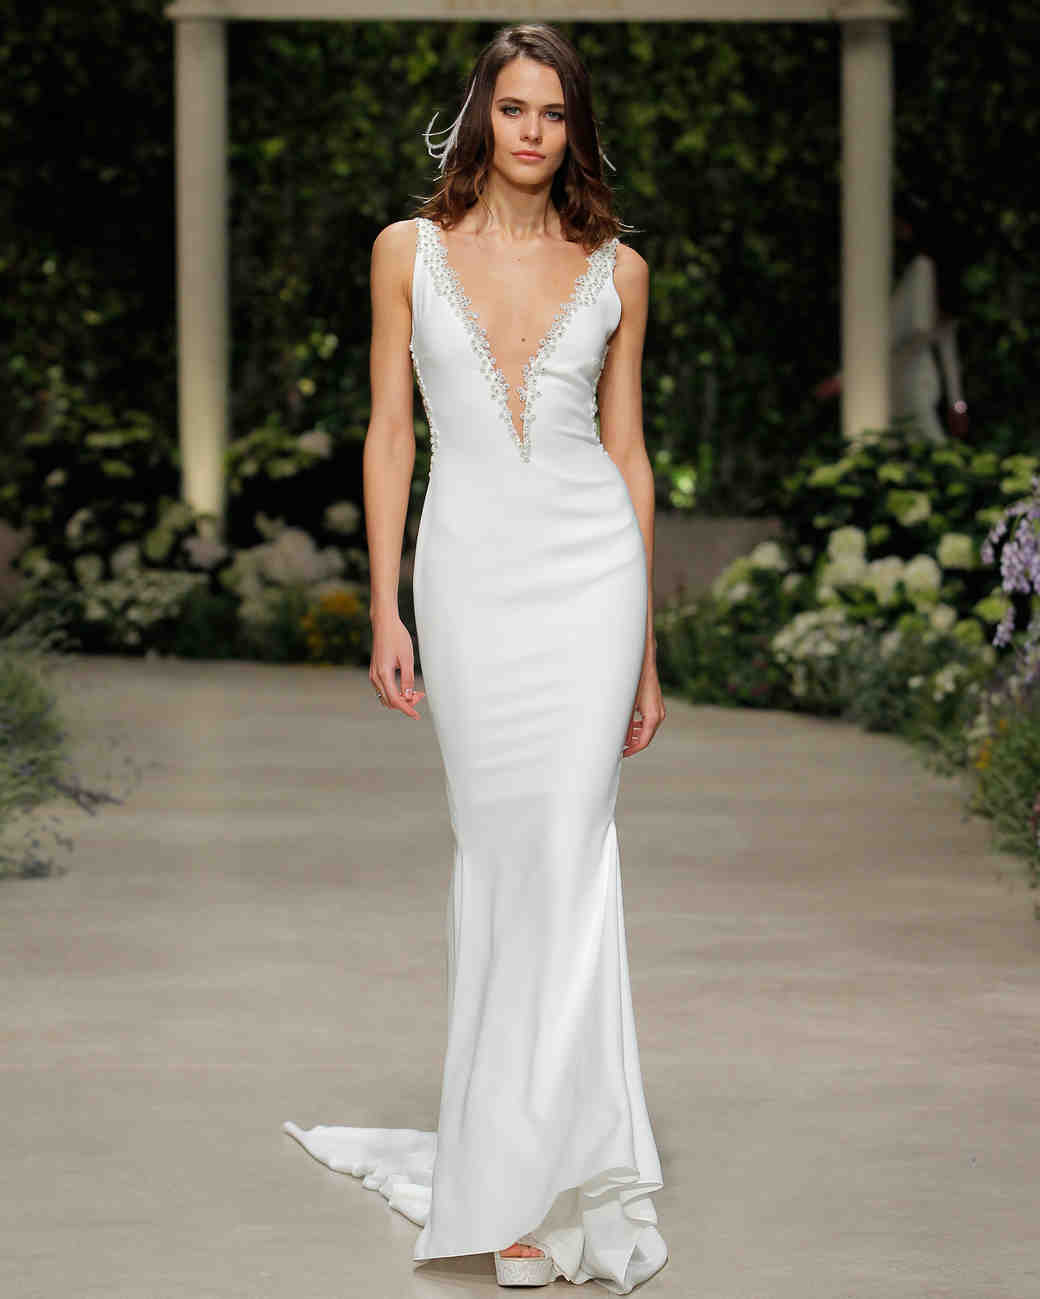 pronovias wedding dress spring 2019 v-neck sheath